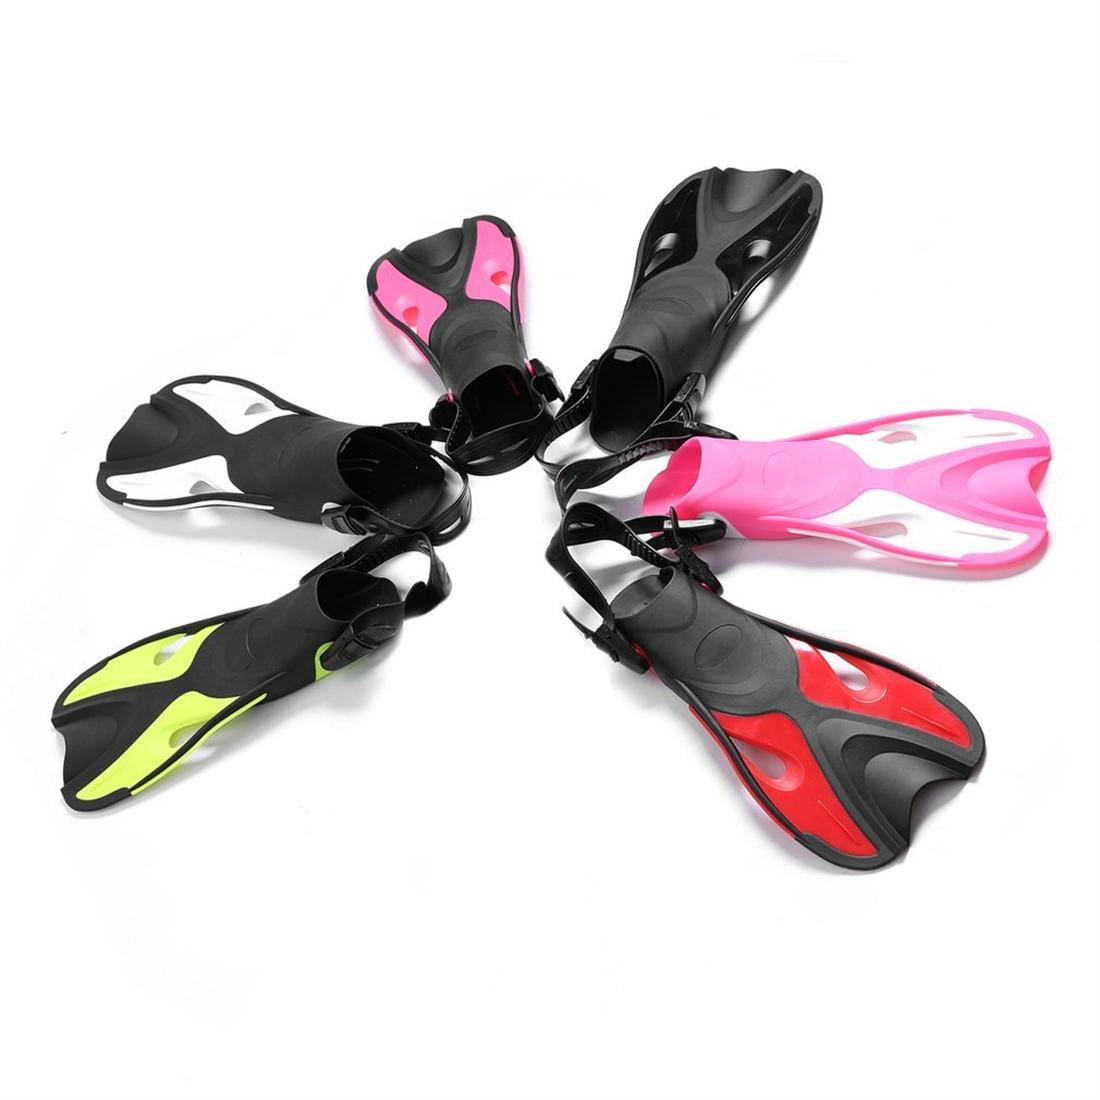 AF701 Adjustable Children Kids Snorkeling Fins Long Flippers Diving